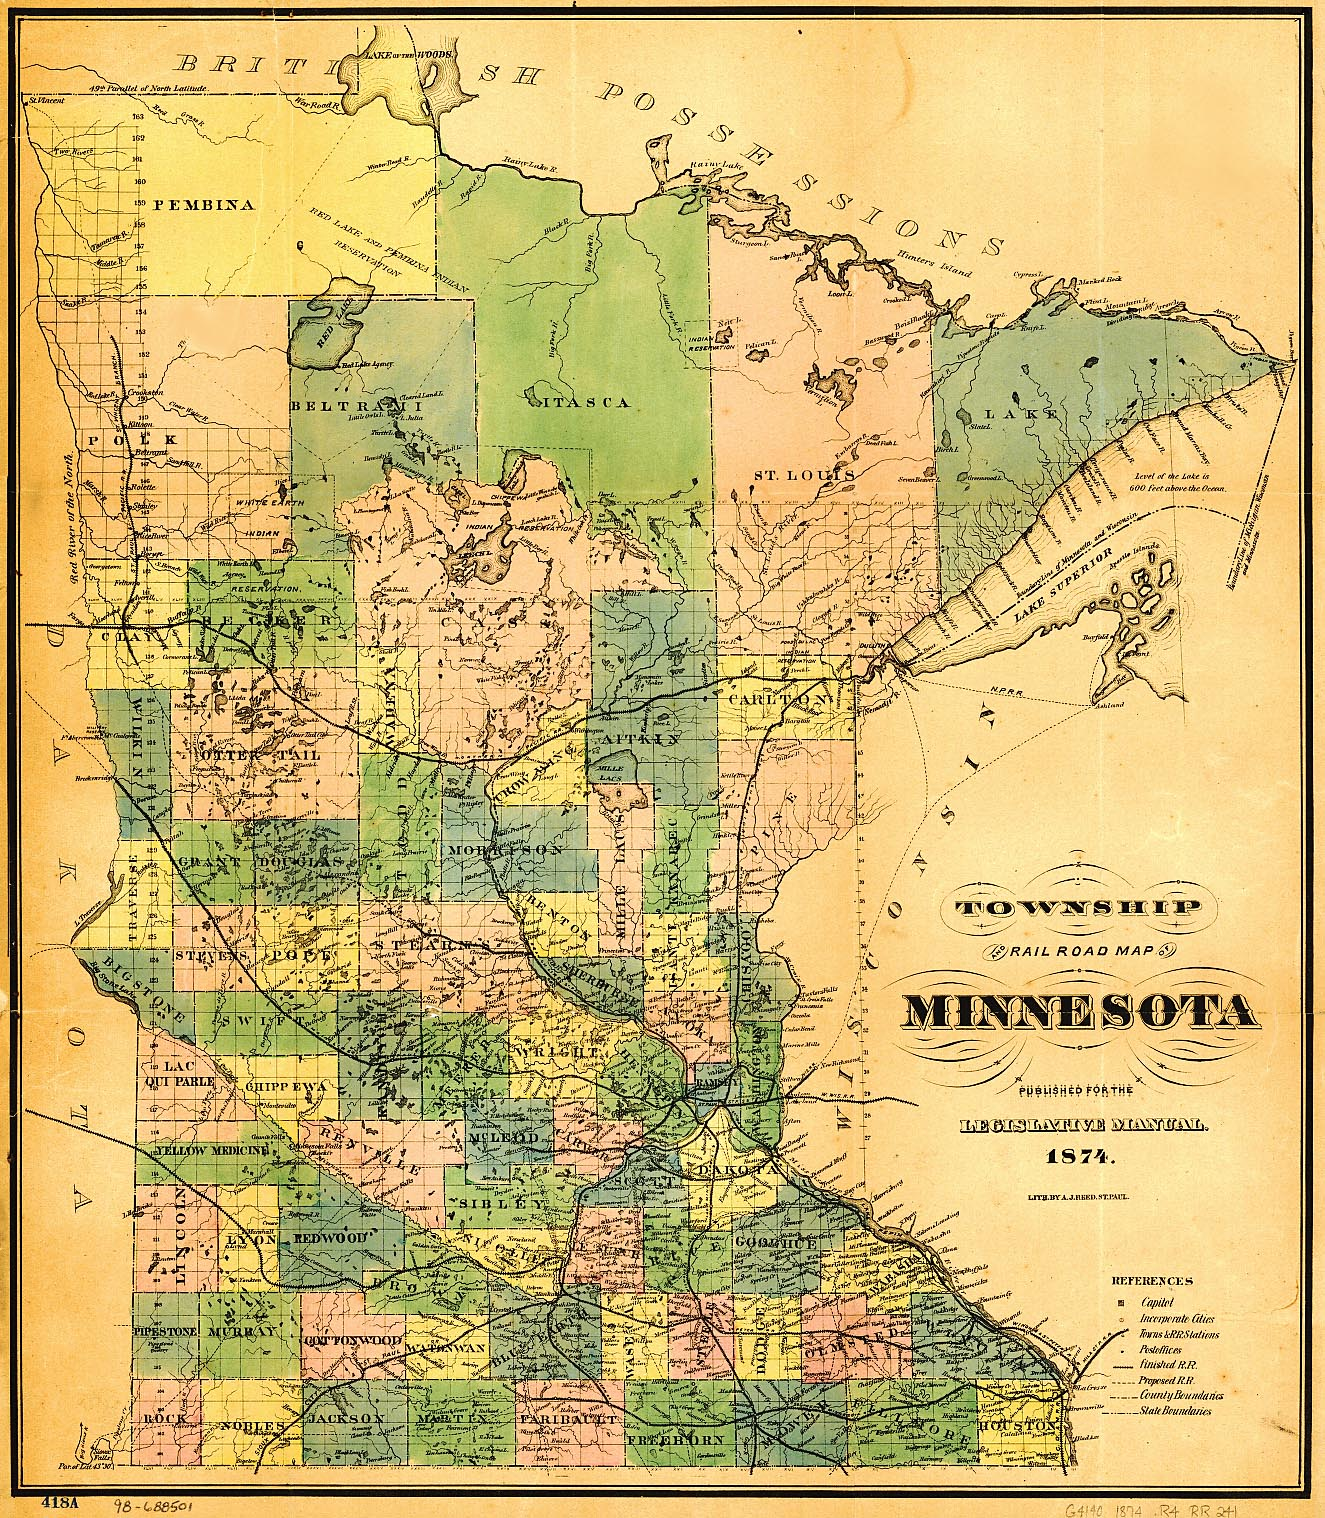 USGenWeb Archives Digital Maps Project Minnesota - County maps of minnesota